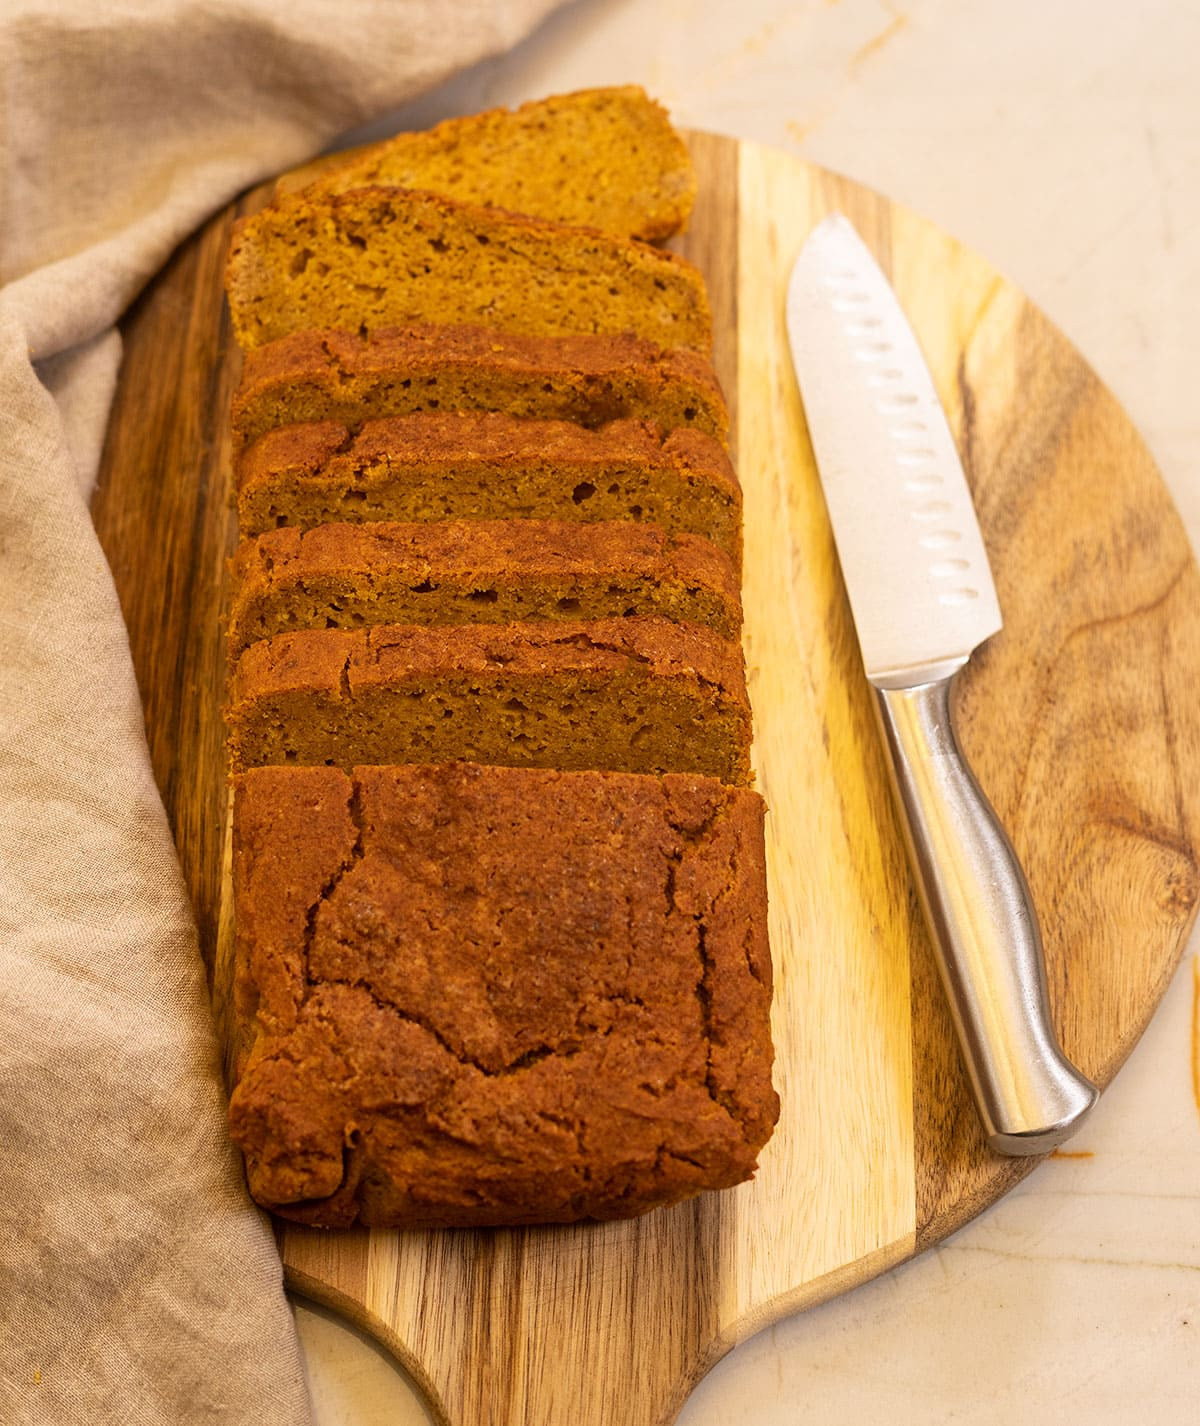 gluten-free pumpkin bread overly, bread cut into slices on a cutting board with a knife on the side